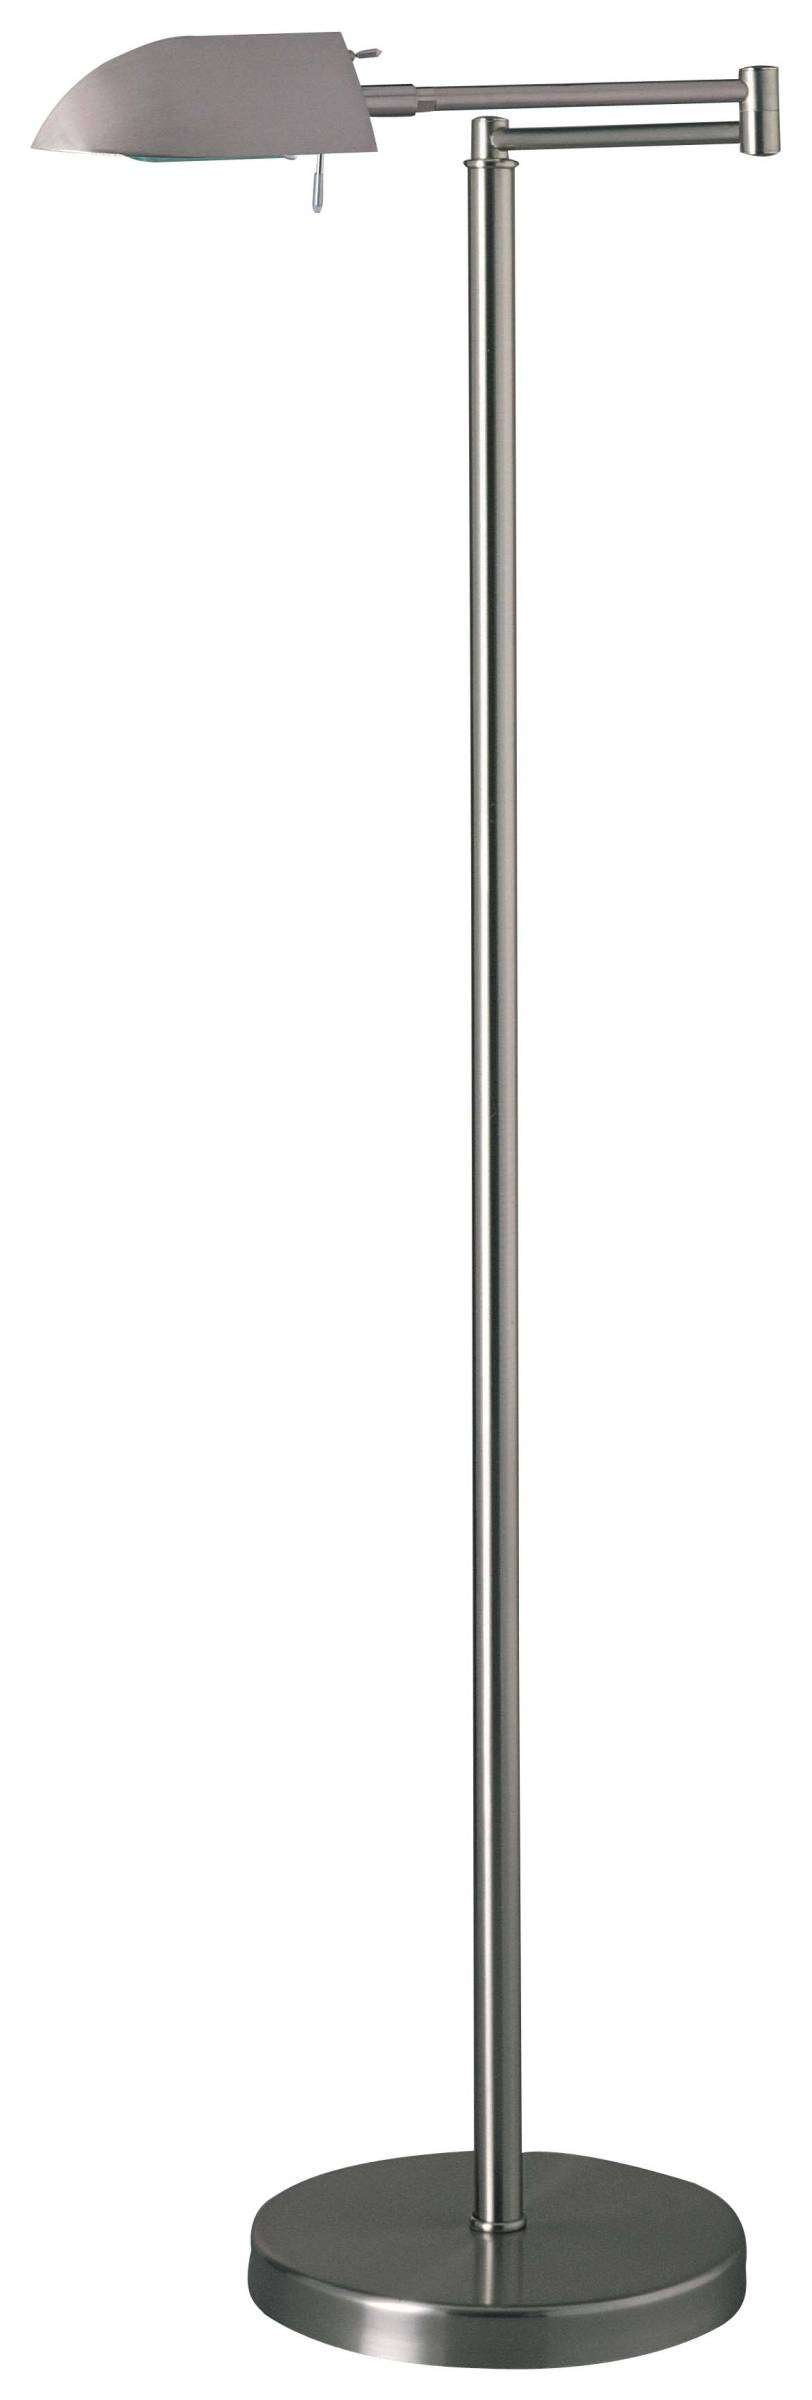 George Kovacs P4354-603 Floor Lamp in Matte Brushed Nickel finish with Metal